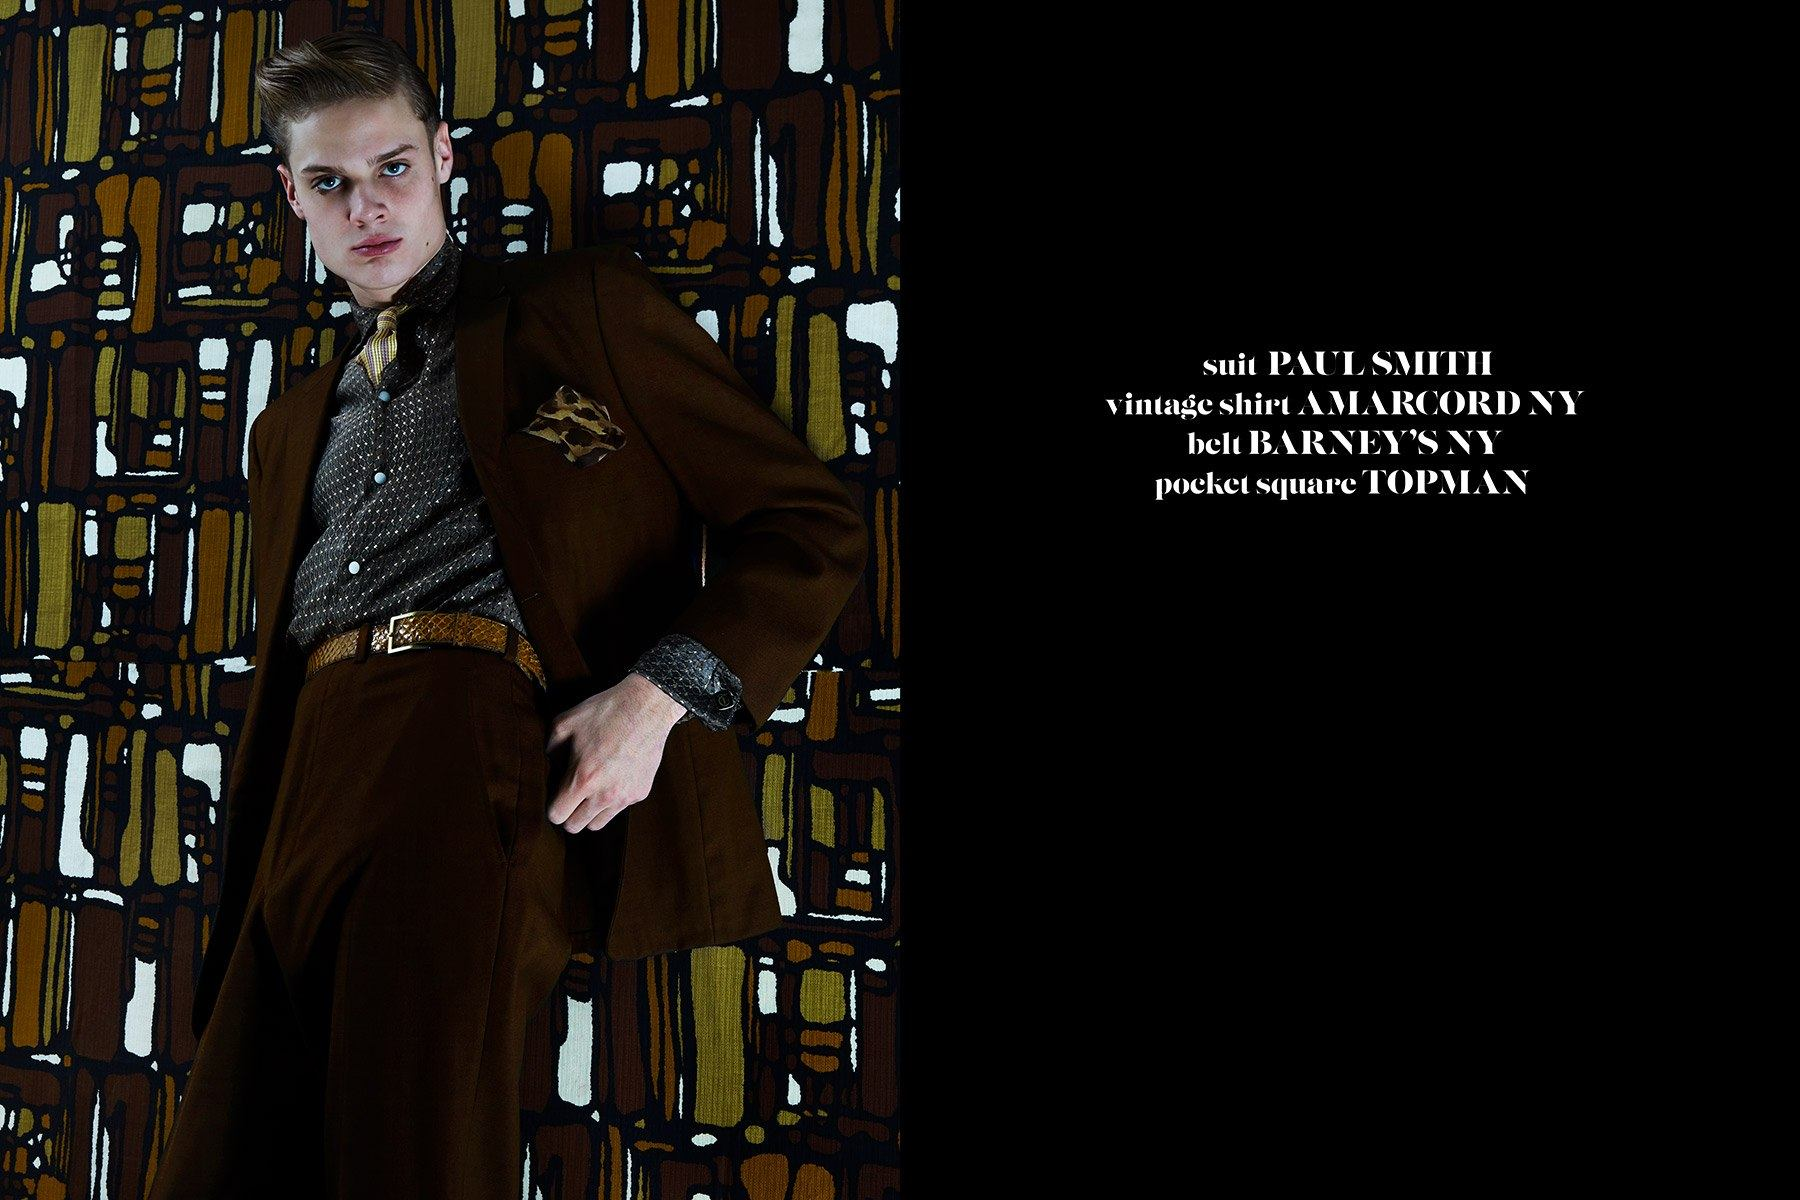 Model Jake Lauria in Paul Smith for Ponyboy magazine 50s menswear editorial. Photography by Alexander Thompson.